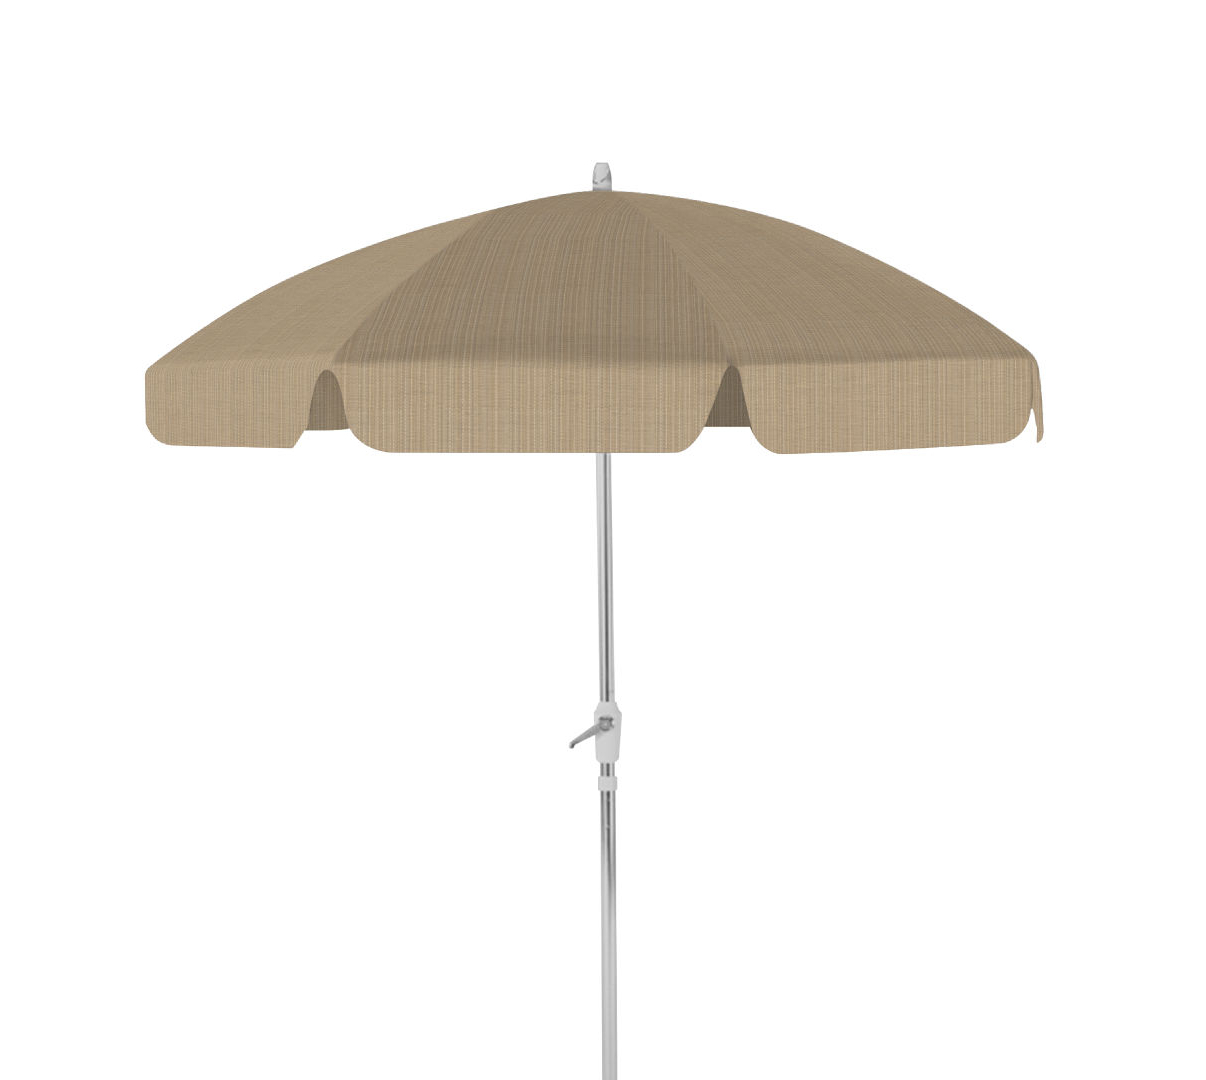 2019 Drape Umbrellas Throughout Drape Umbrella 7 1/2' 8 Rib Drape Umbrella With Tilttelescope Casual (View 3 of 20)